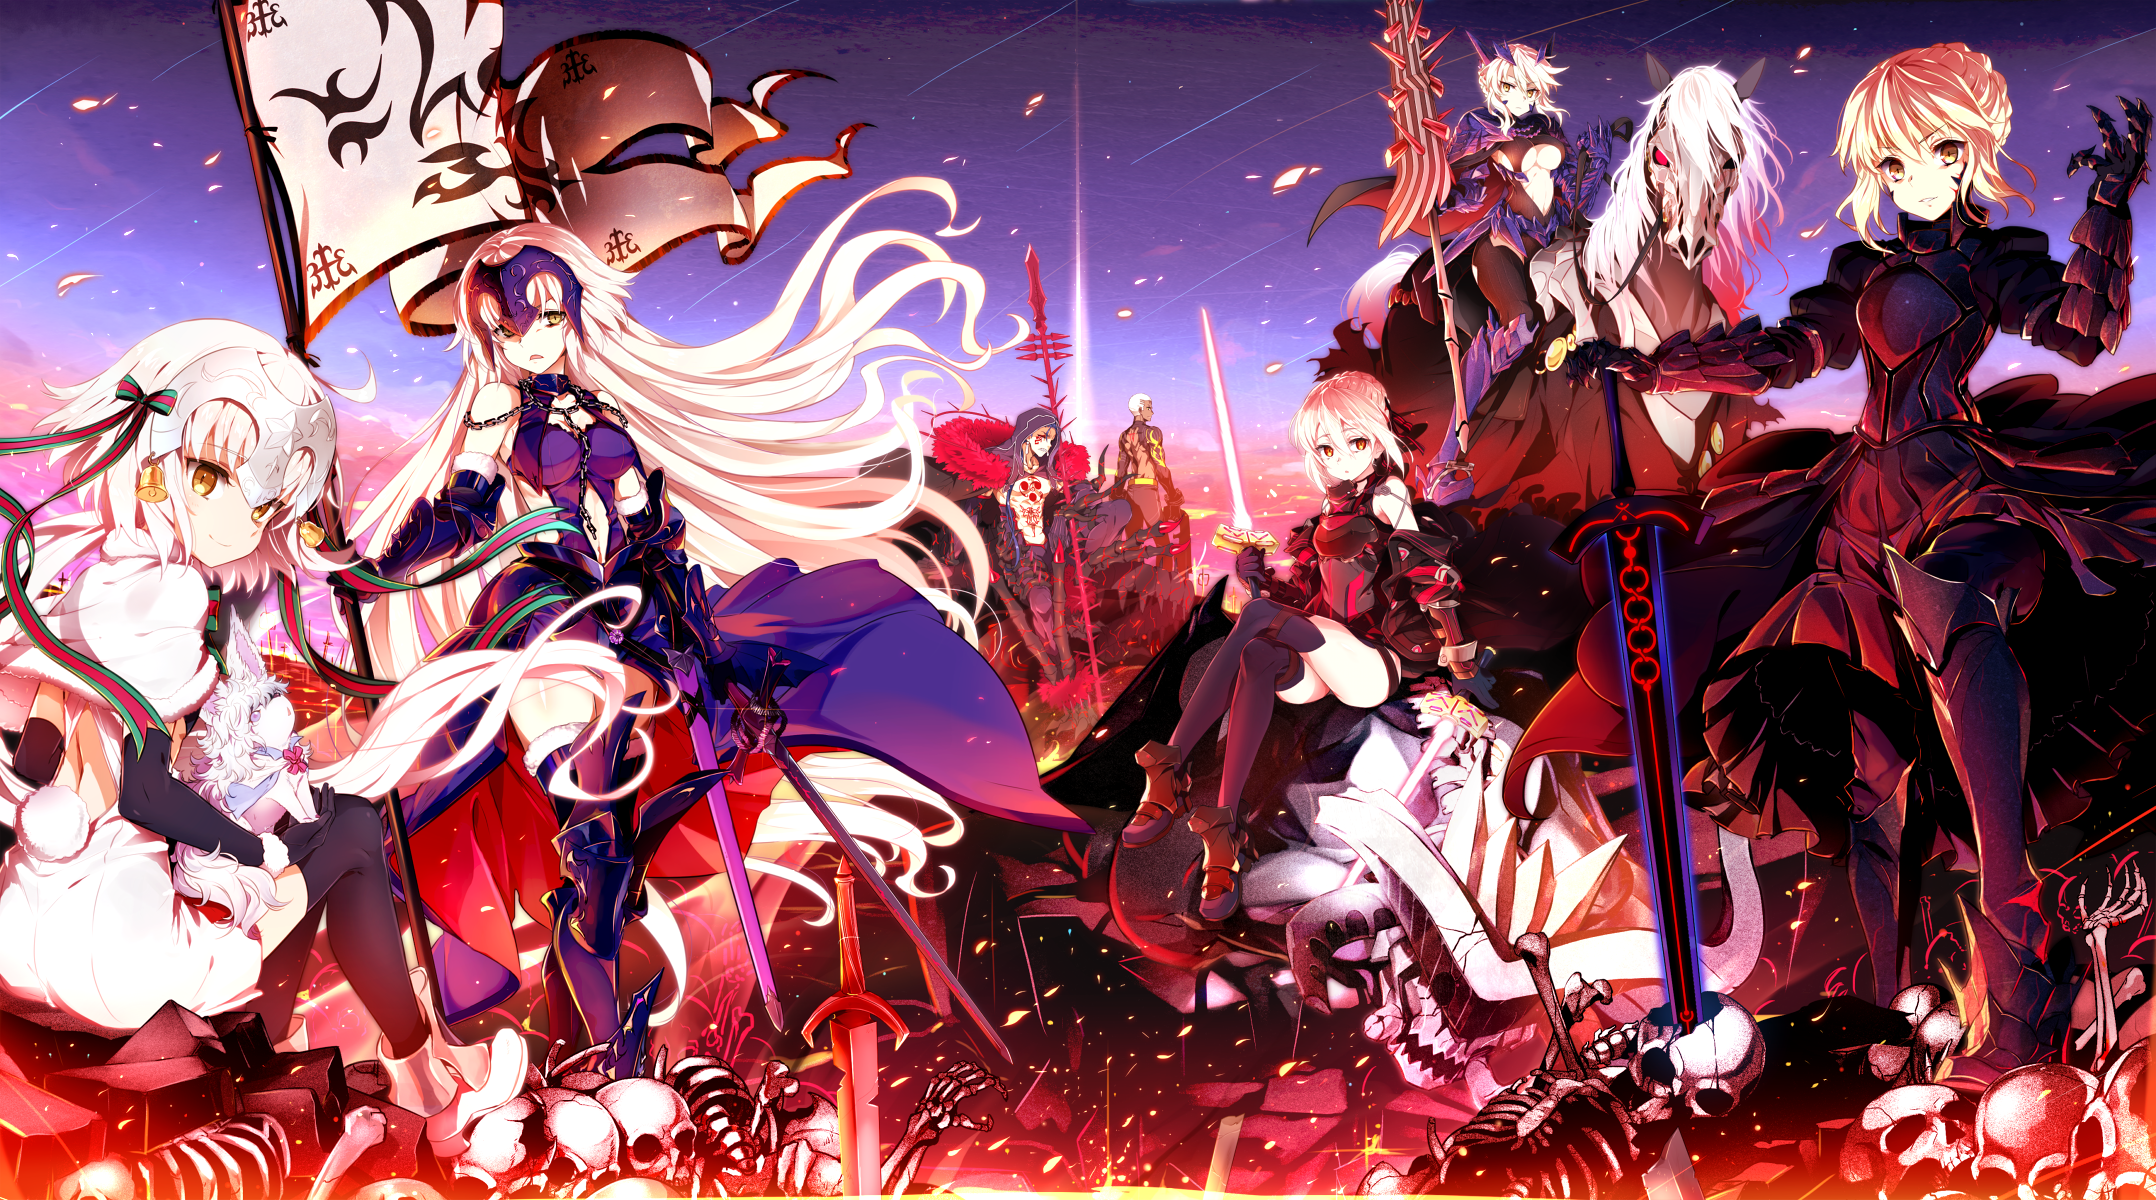 2406 Fate Grand Order Hd Wallpapers Background Images